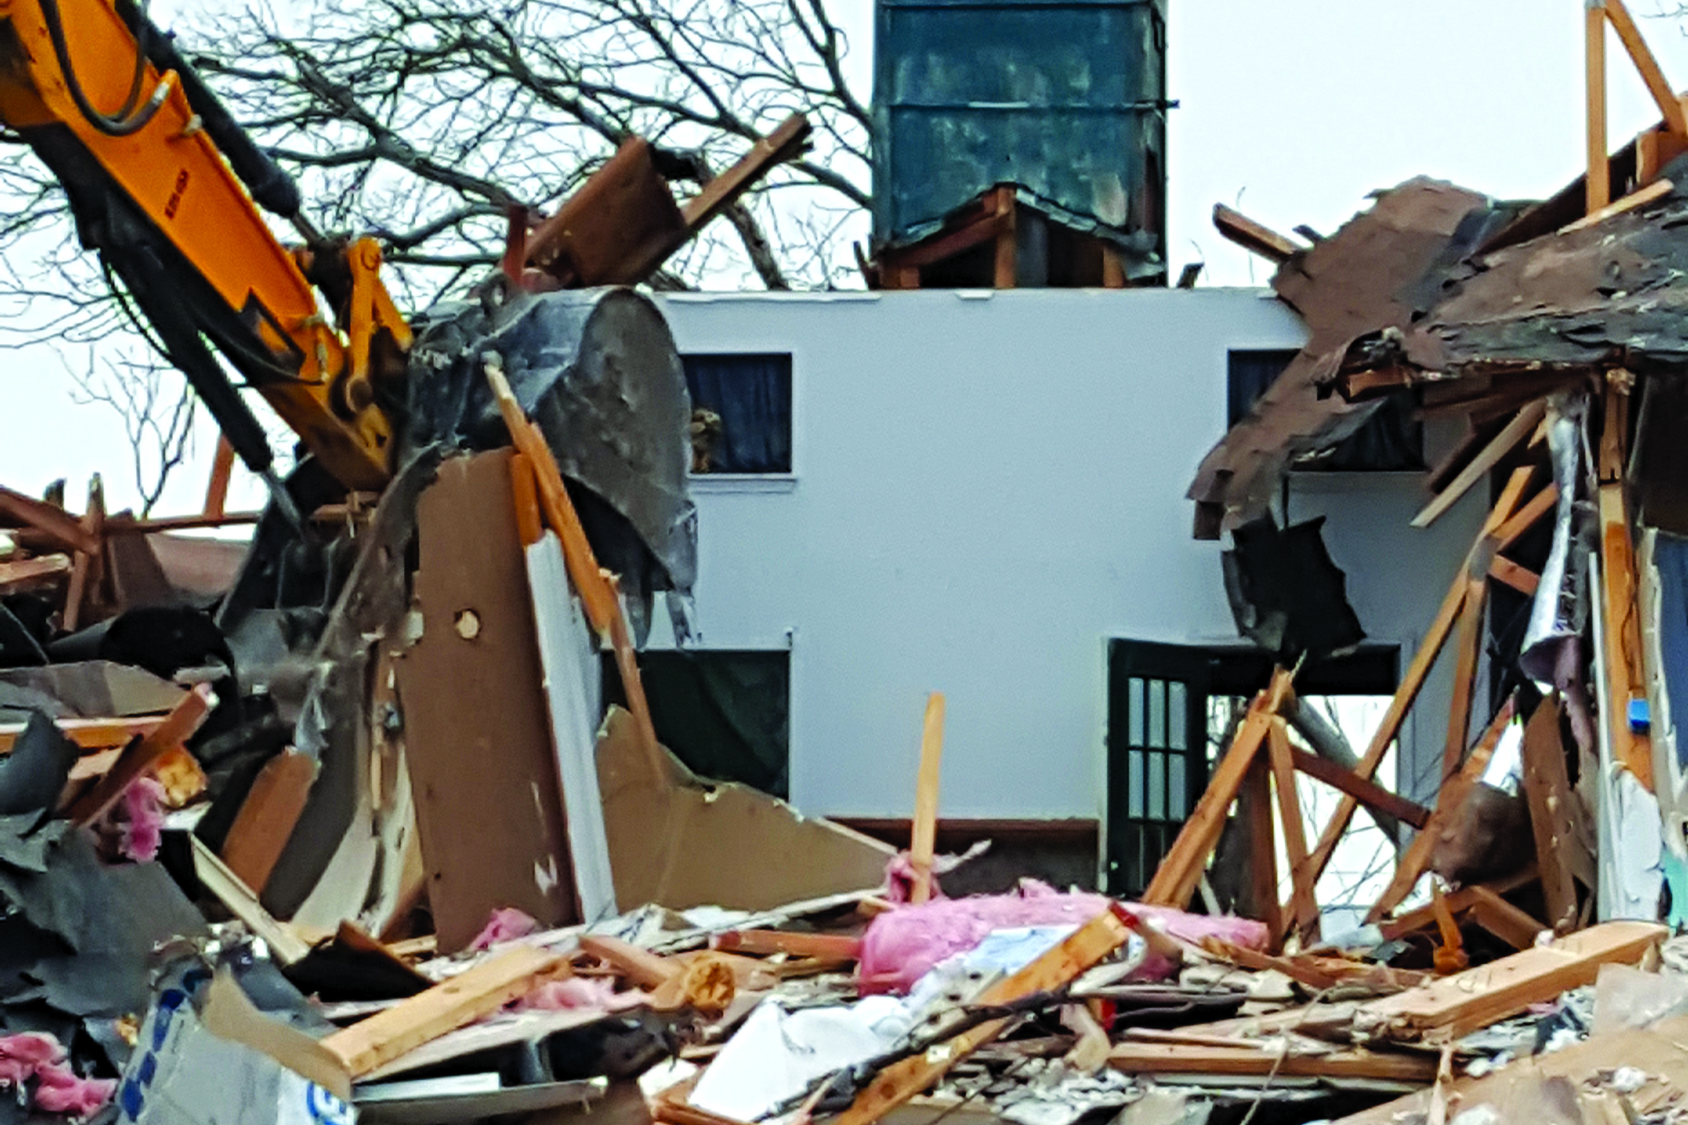 A year later: Looking back at life after the Dec. 26 tornadoes